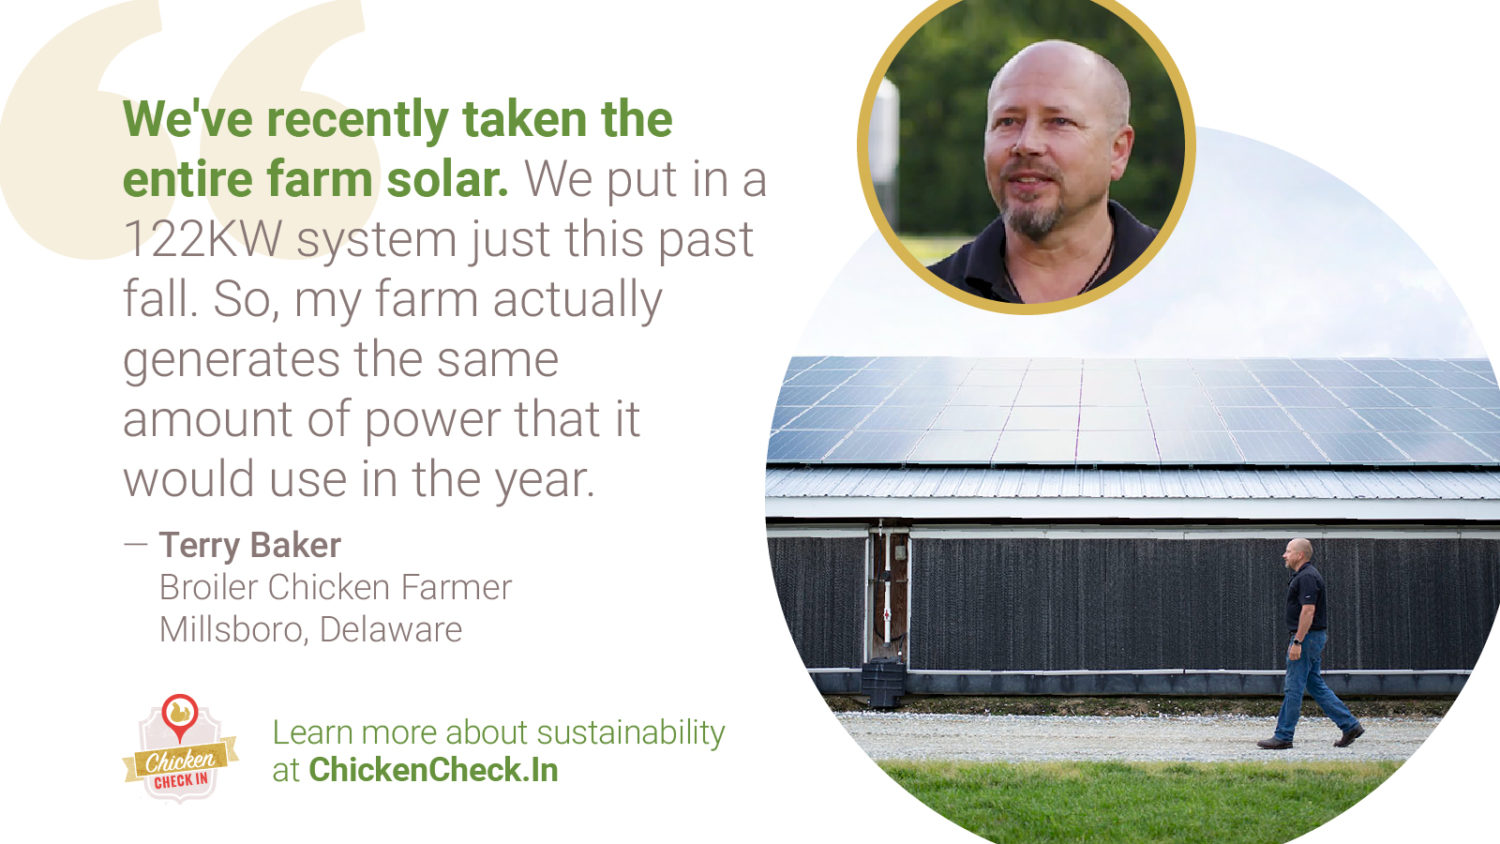 """We've recently taken the entire farm solar. We put in a 122KW system just this past fall. So, my farm actually generates the same amount of power that it would use in the year."" Terry Baker, broiler chicken farmer from Delaware"